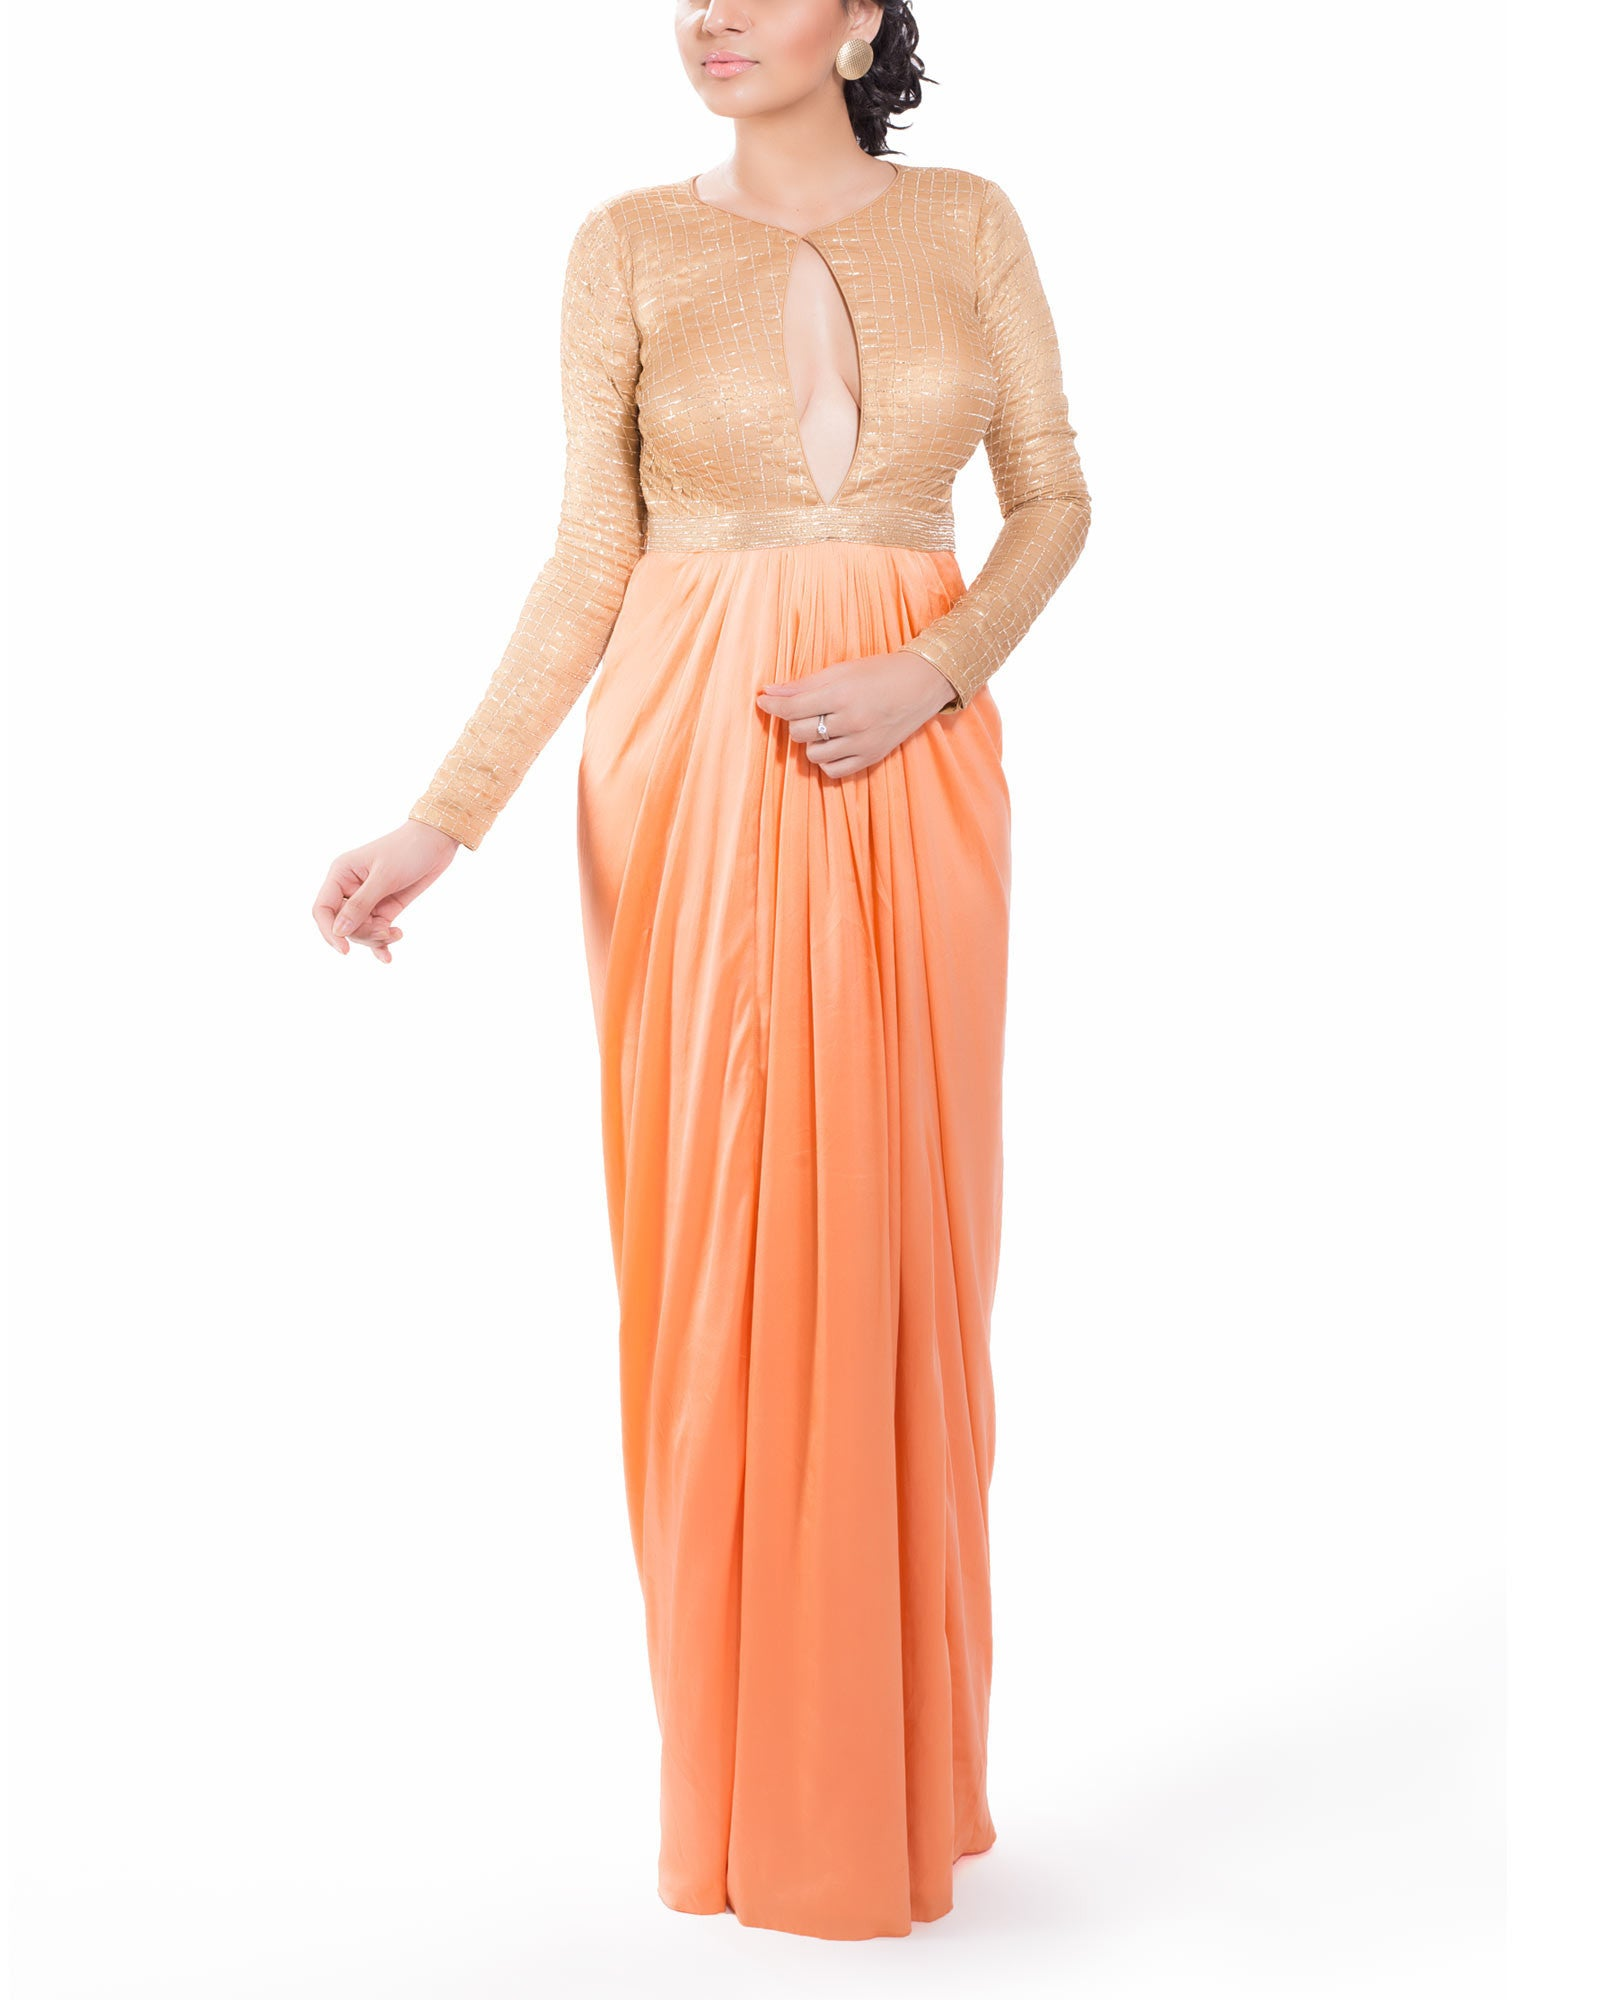 Evening Gowns - Greek Goddess